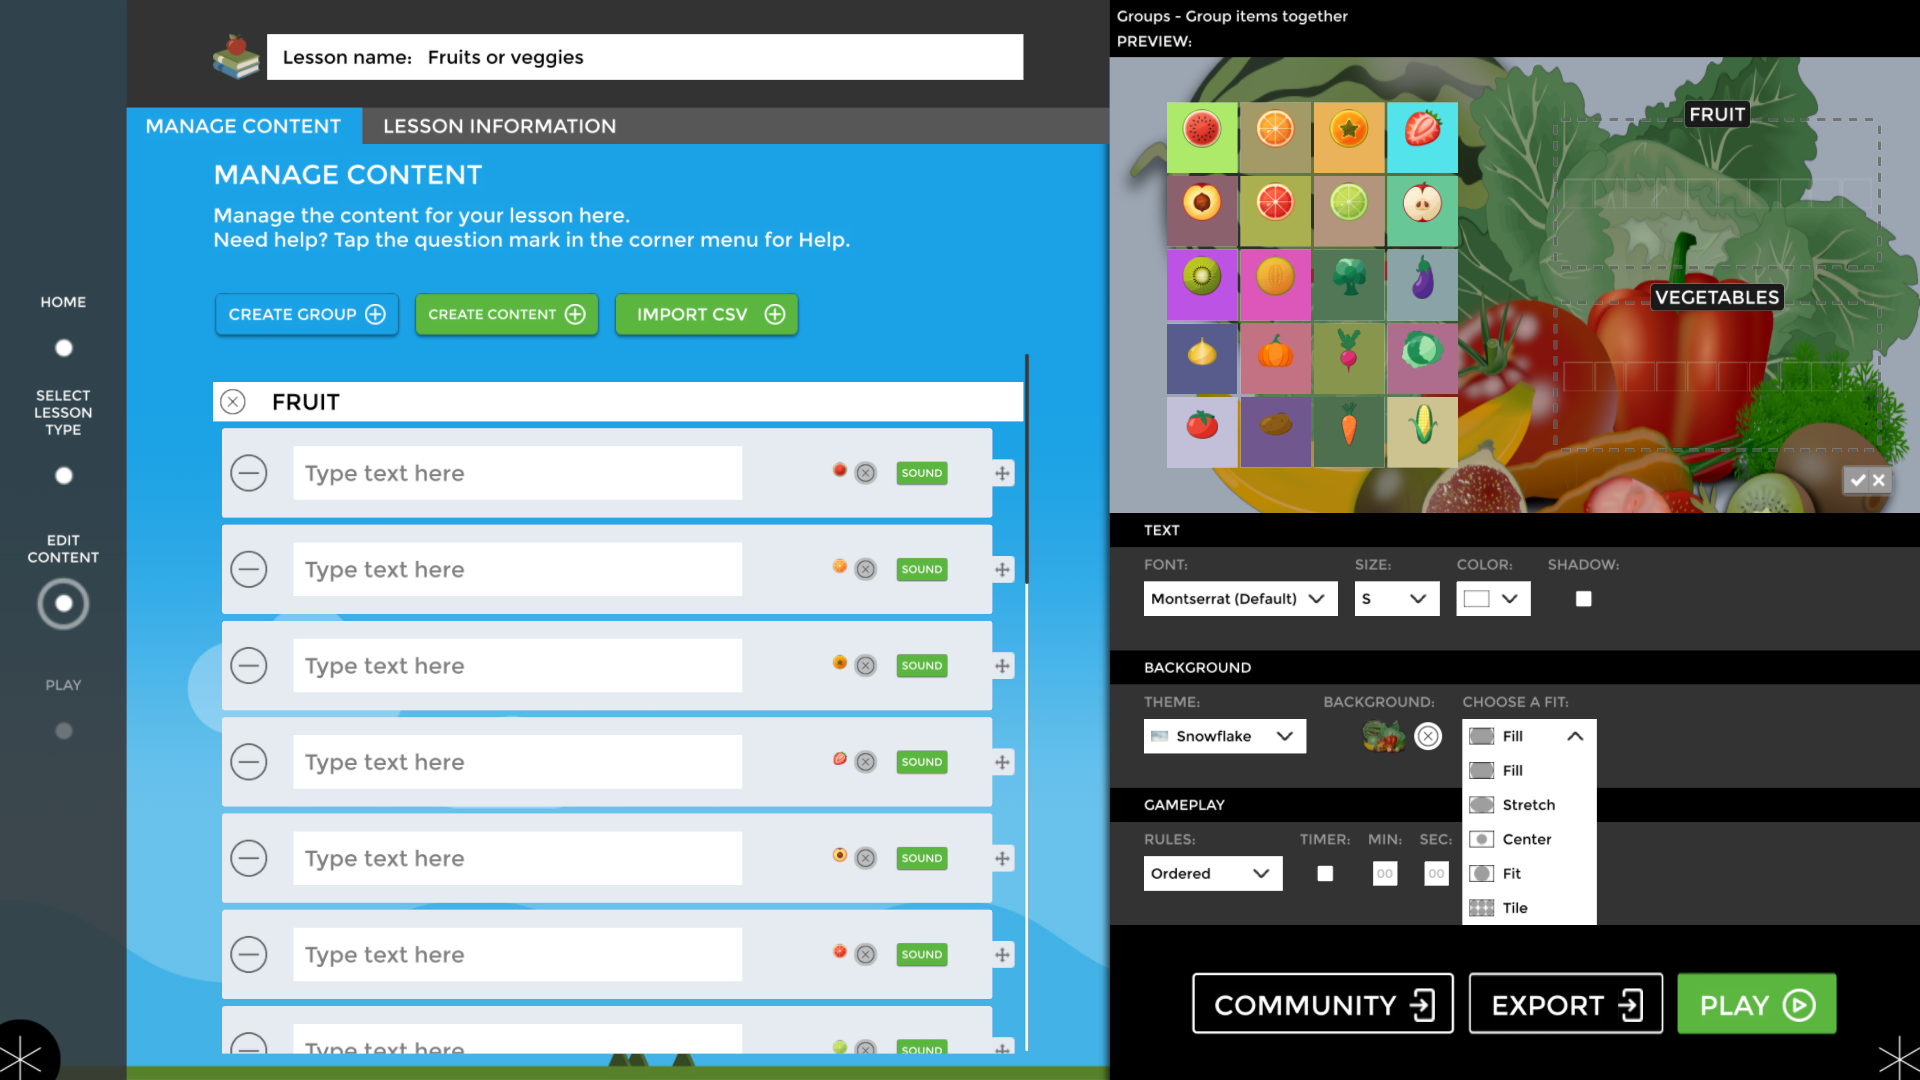 Added_in_the_Lessons_app_5_different_background_options